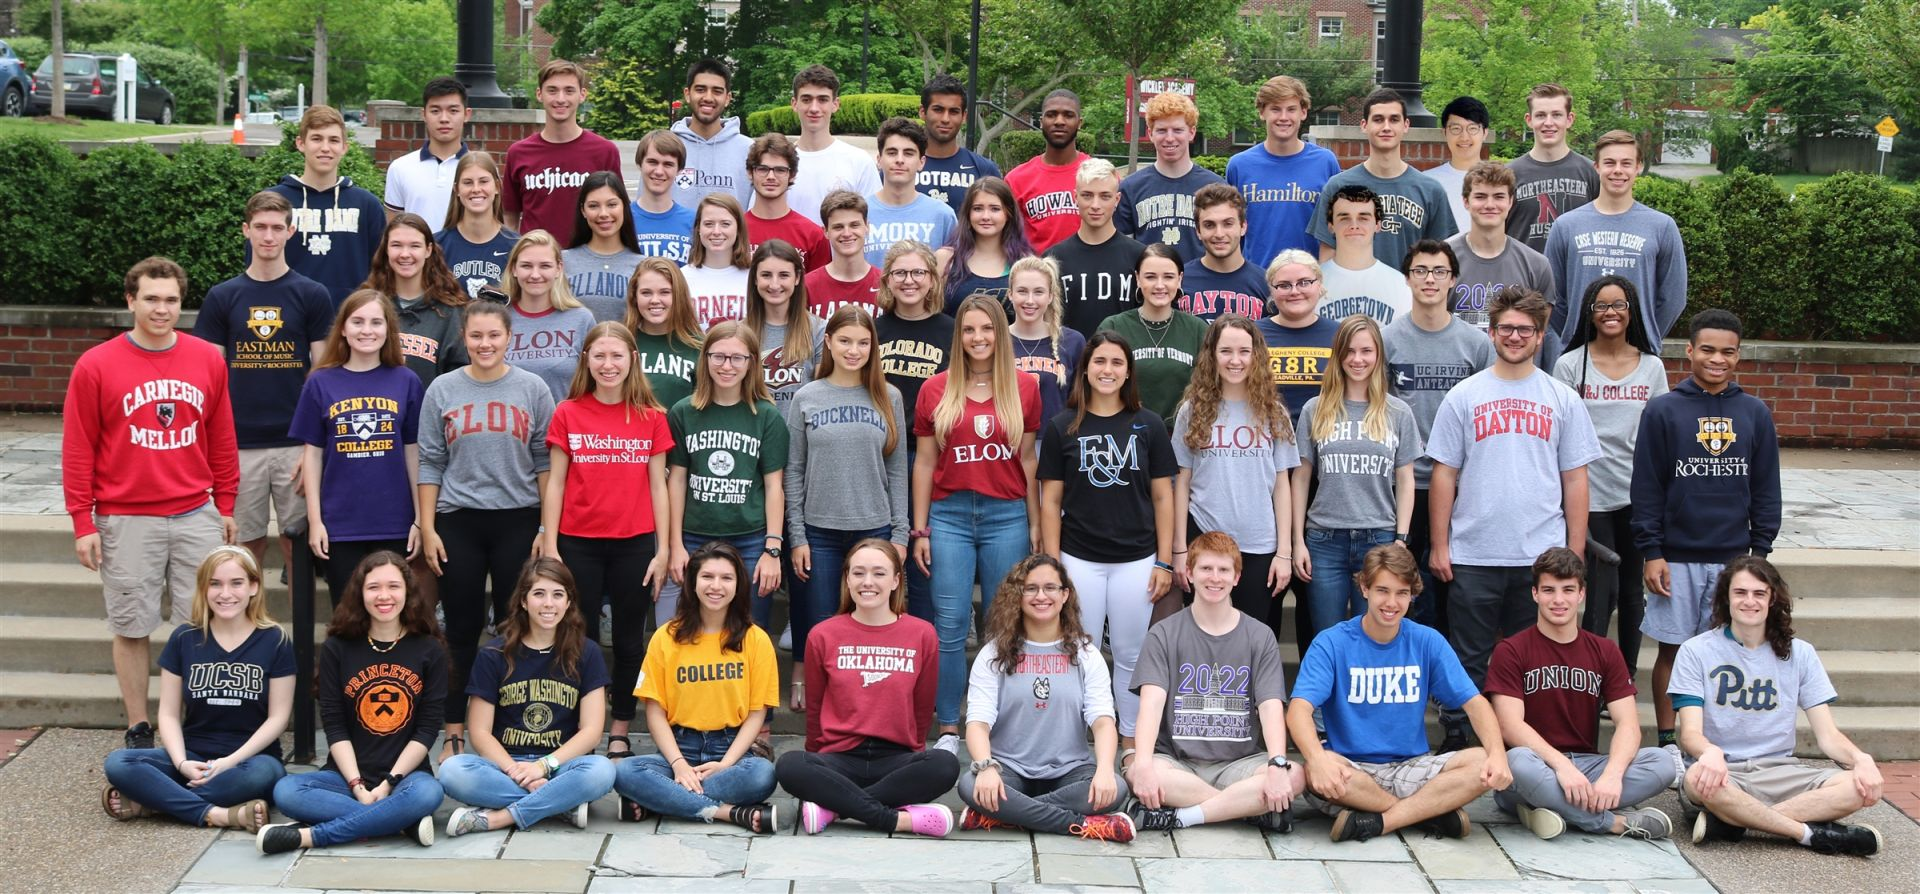 Check out the Class of 2018 wearing shirts representing their college choices.